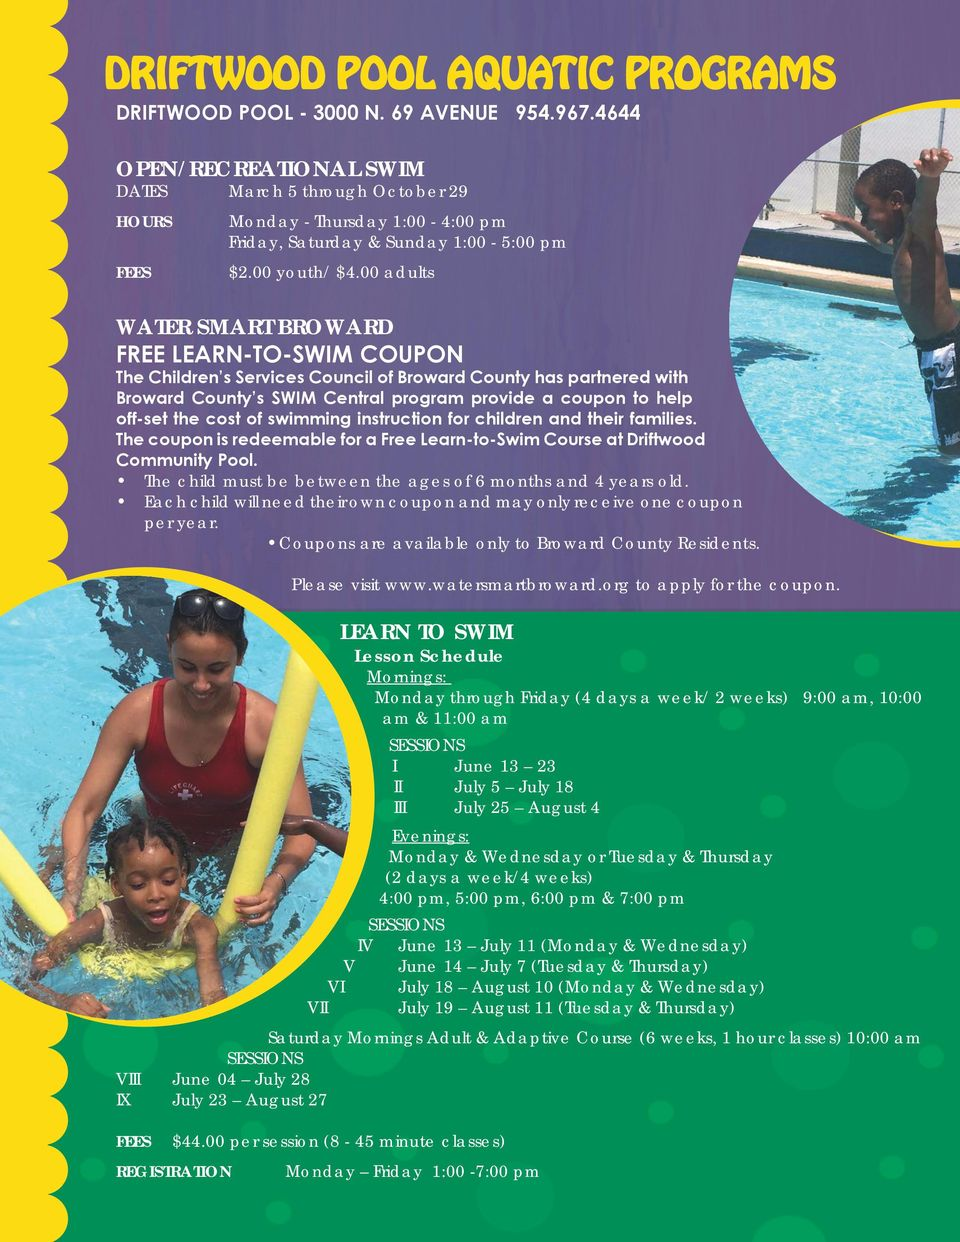 00 adults WATER SMART BROWARD FREE LEARN-TO-SWIM COUPON The Children s Services Council of Broward County has partnered with Broward County s SWIM Central program provide a coupon to help off-set the